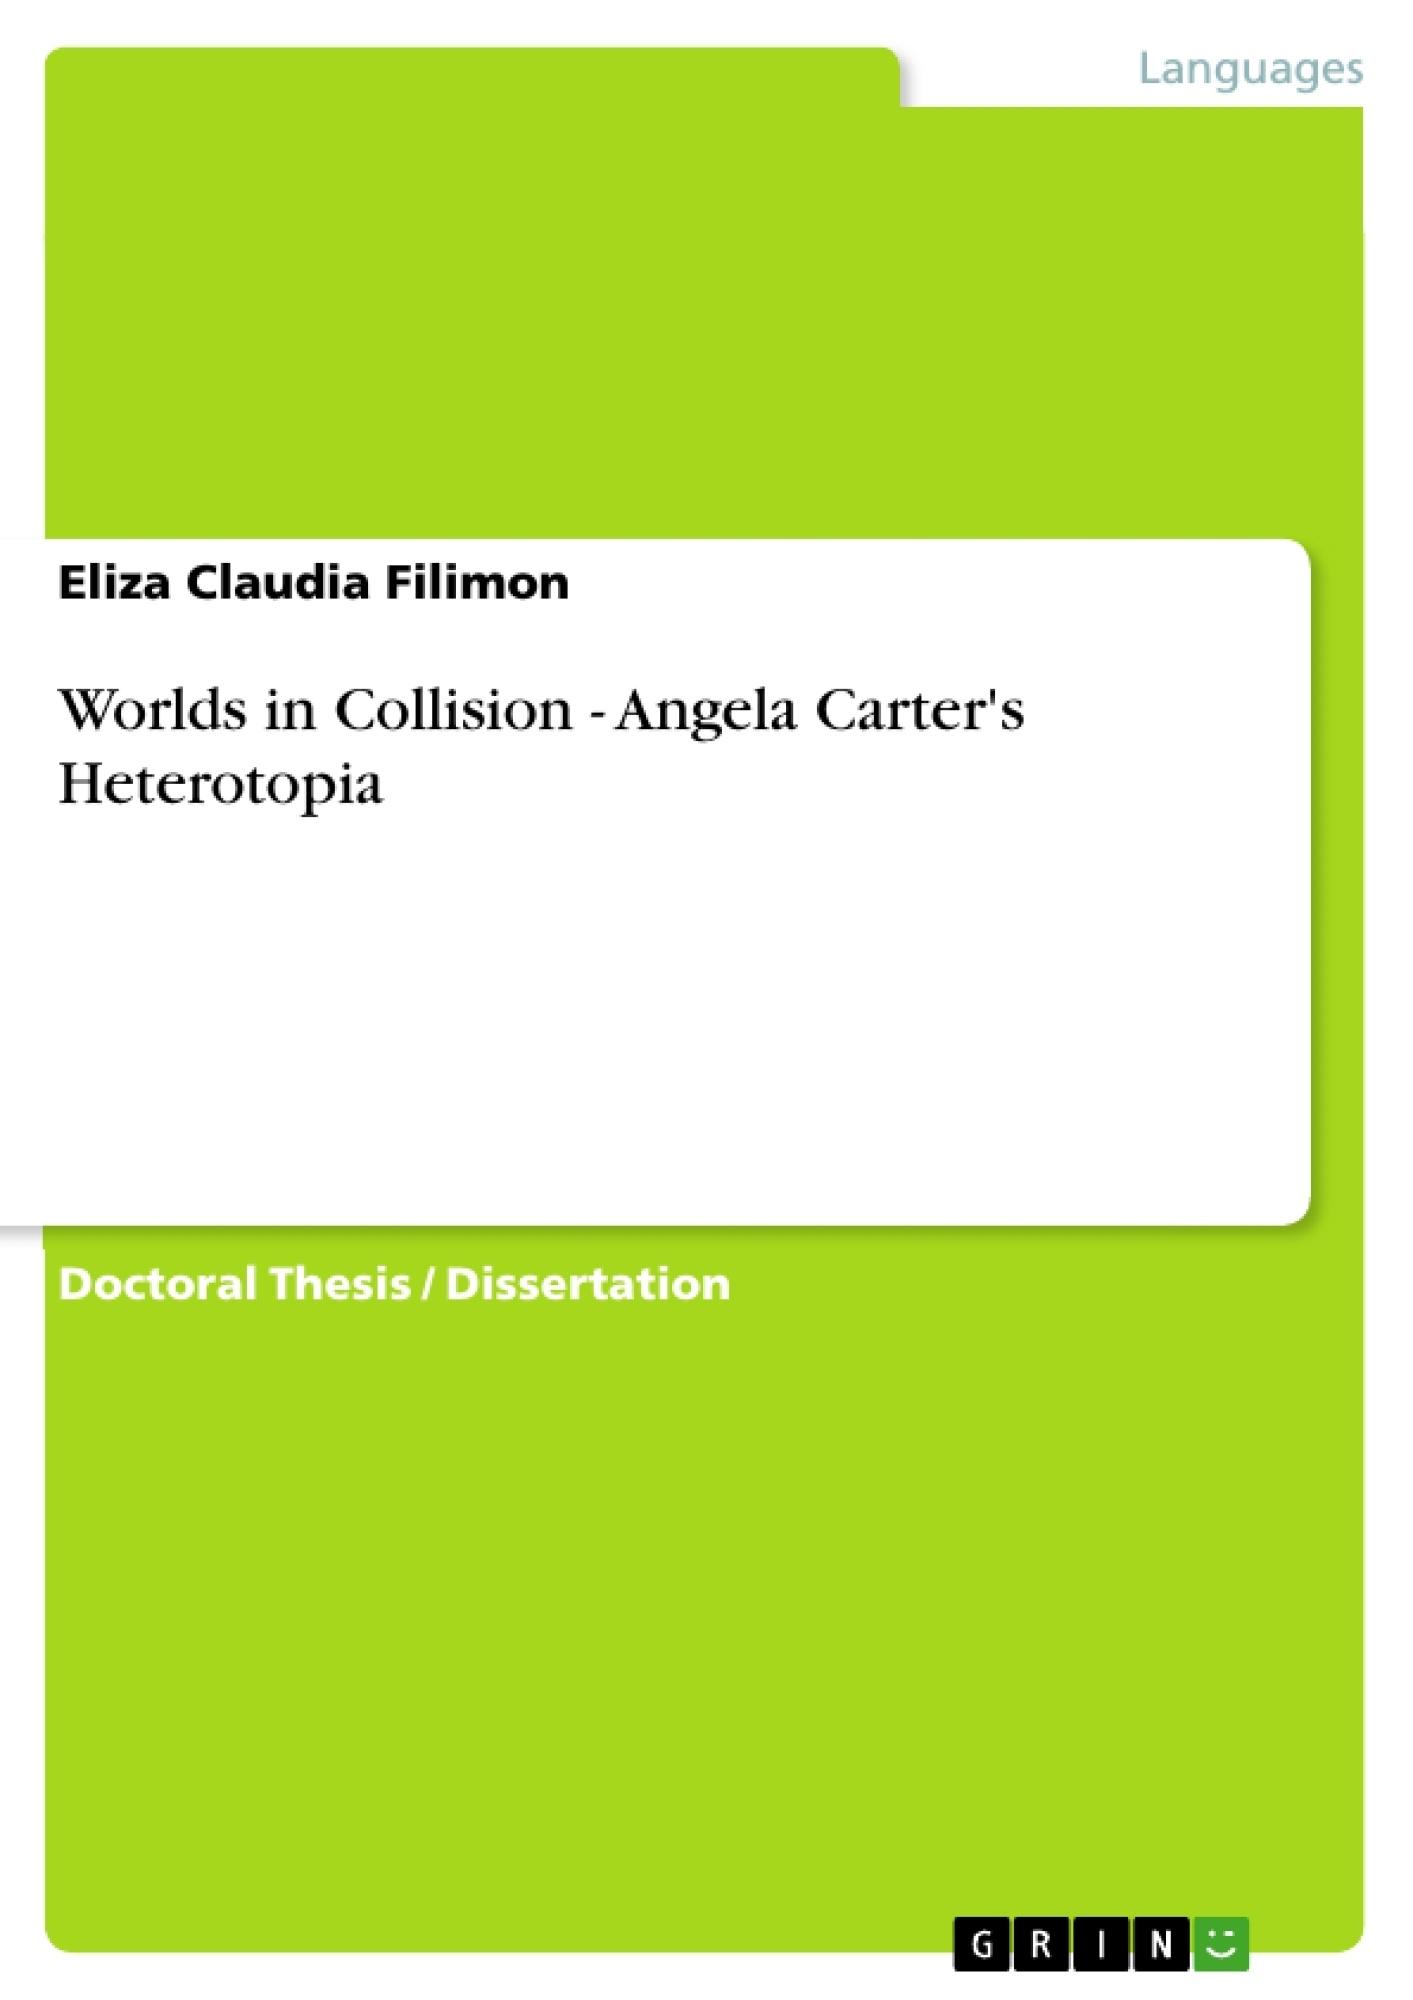 Title: Worlds in Collision - Angela Carter's Heterotopia